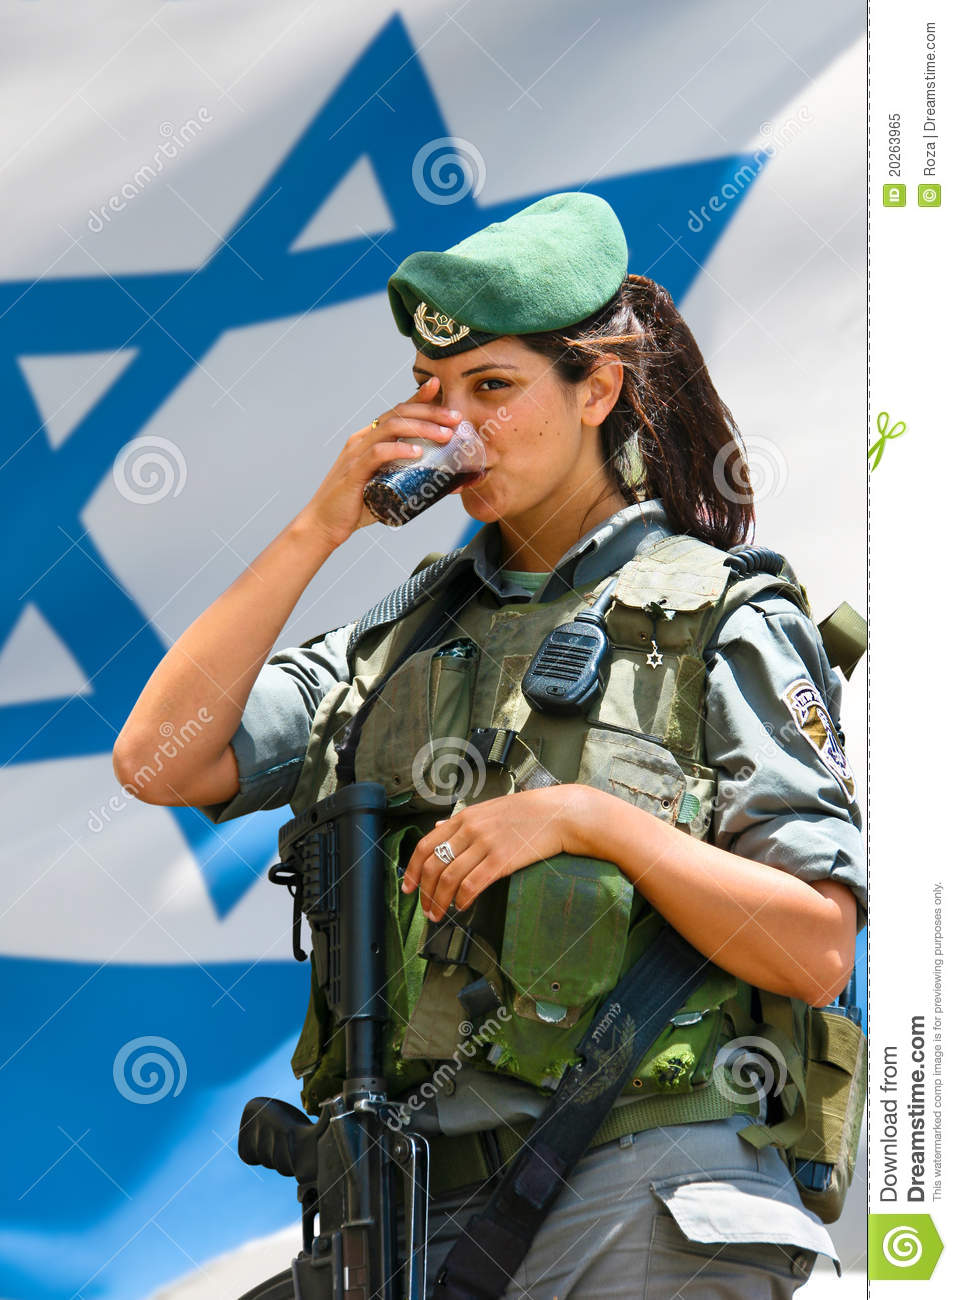 American Flag Pin Up Girl Wallpaper Israeli Army Girl Editorial Image Image Of Jerusalem